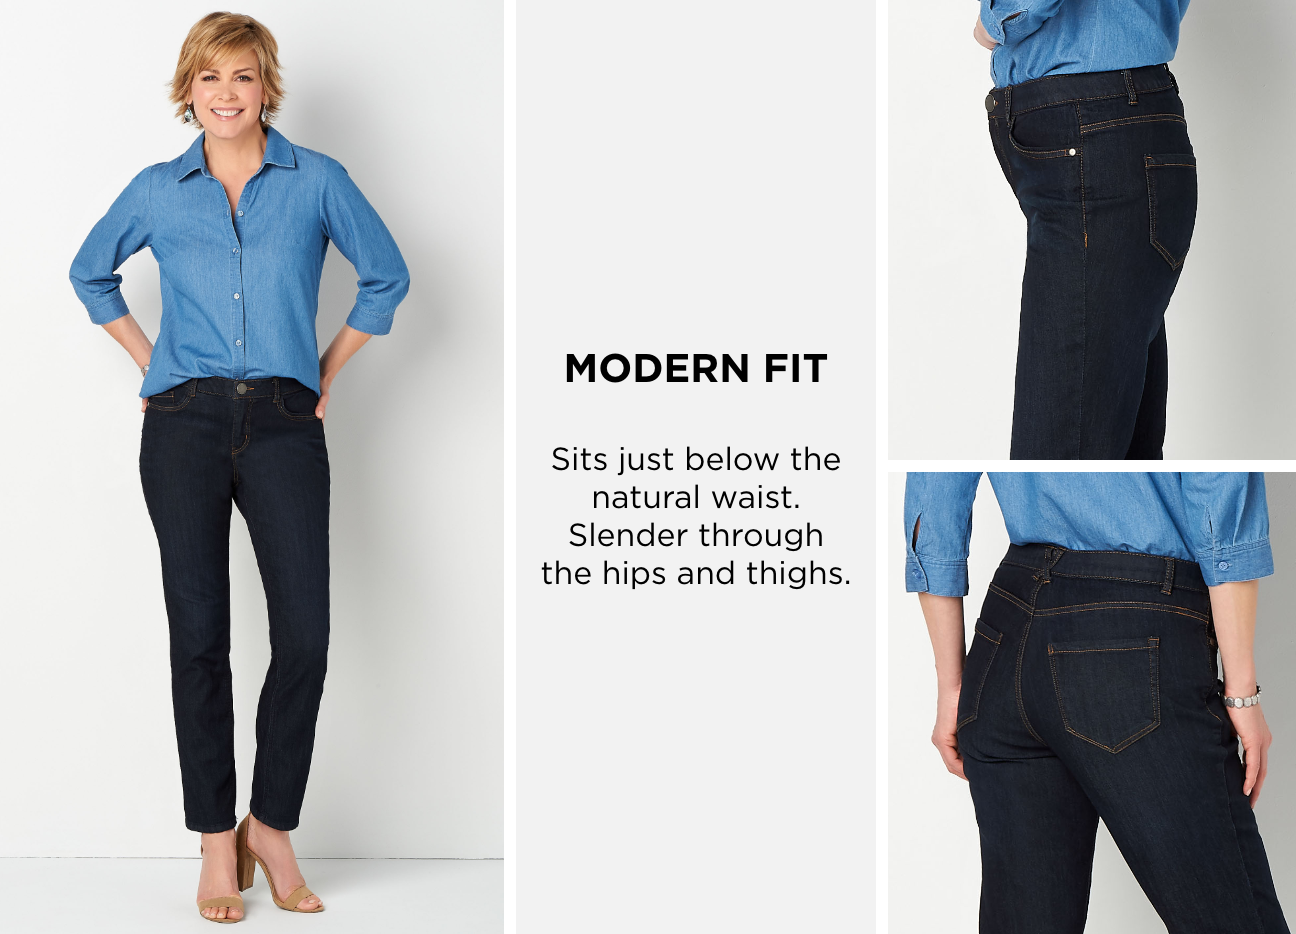 Modern Fit. Sits just below the natural waist. Slender through the hips and thighs.